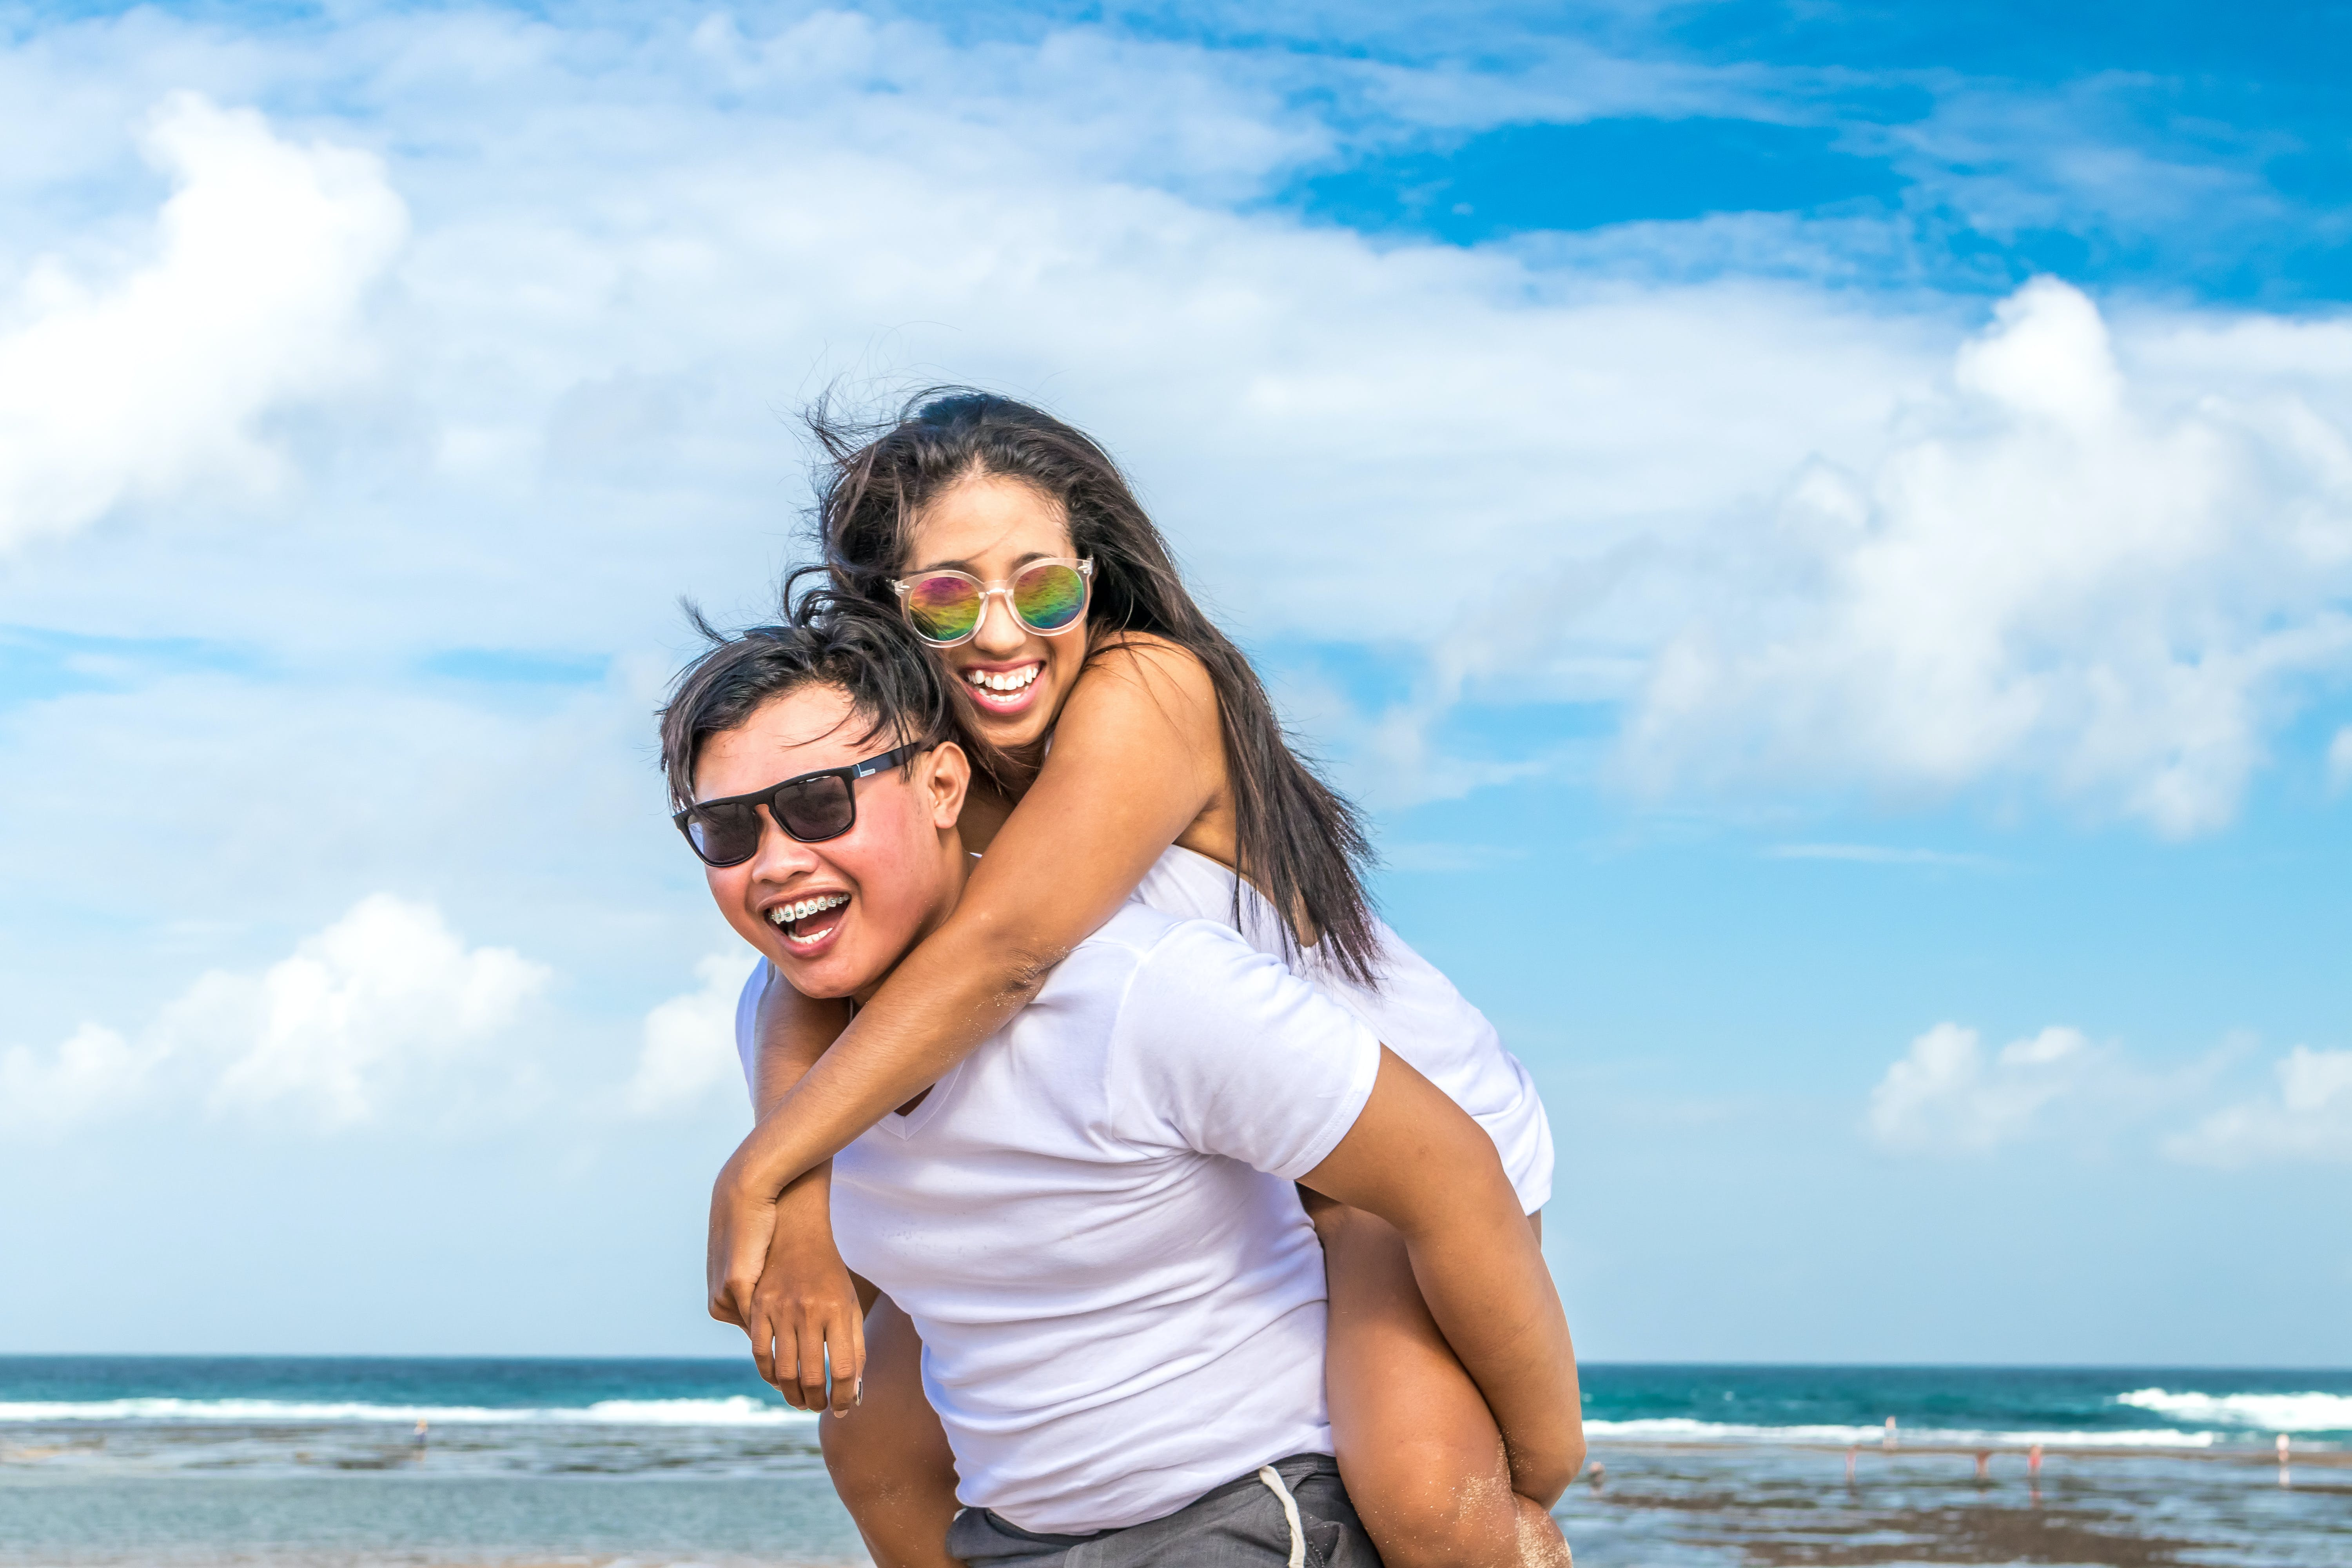 Man Carrying Woman on Back Smiling